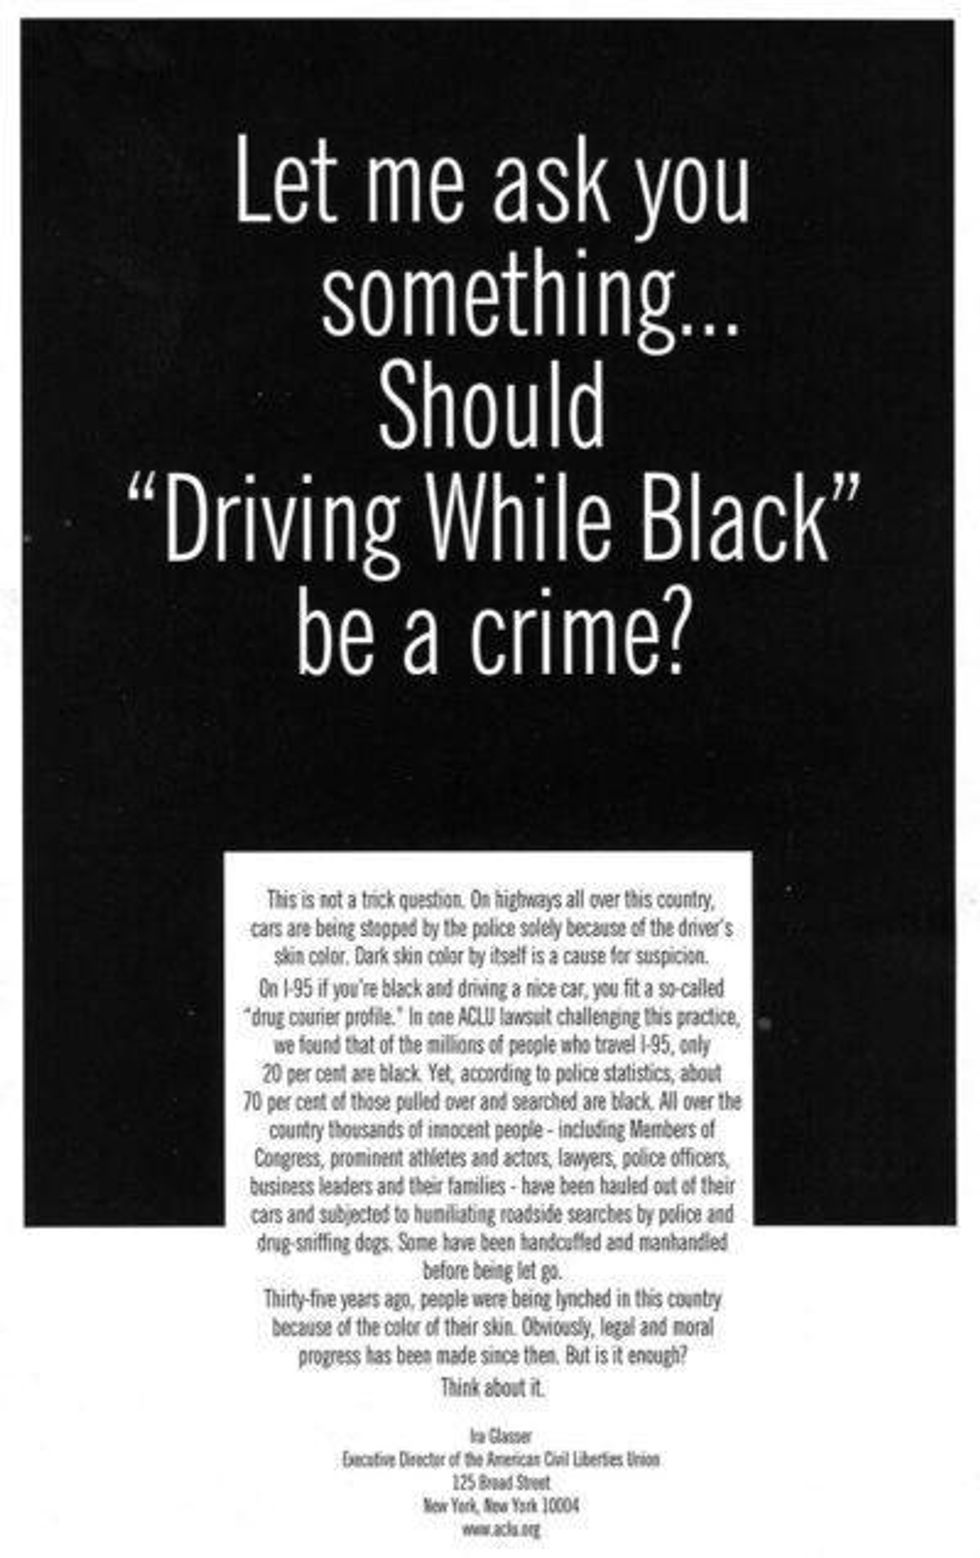 Image - Text graphic - Let me ask you something: should Driving While Black be a crime?